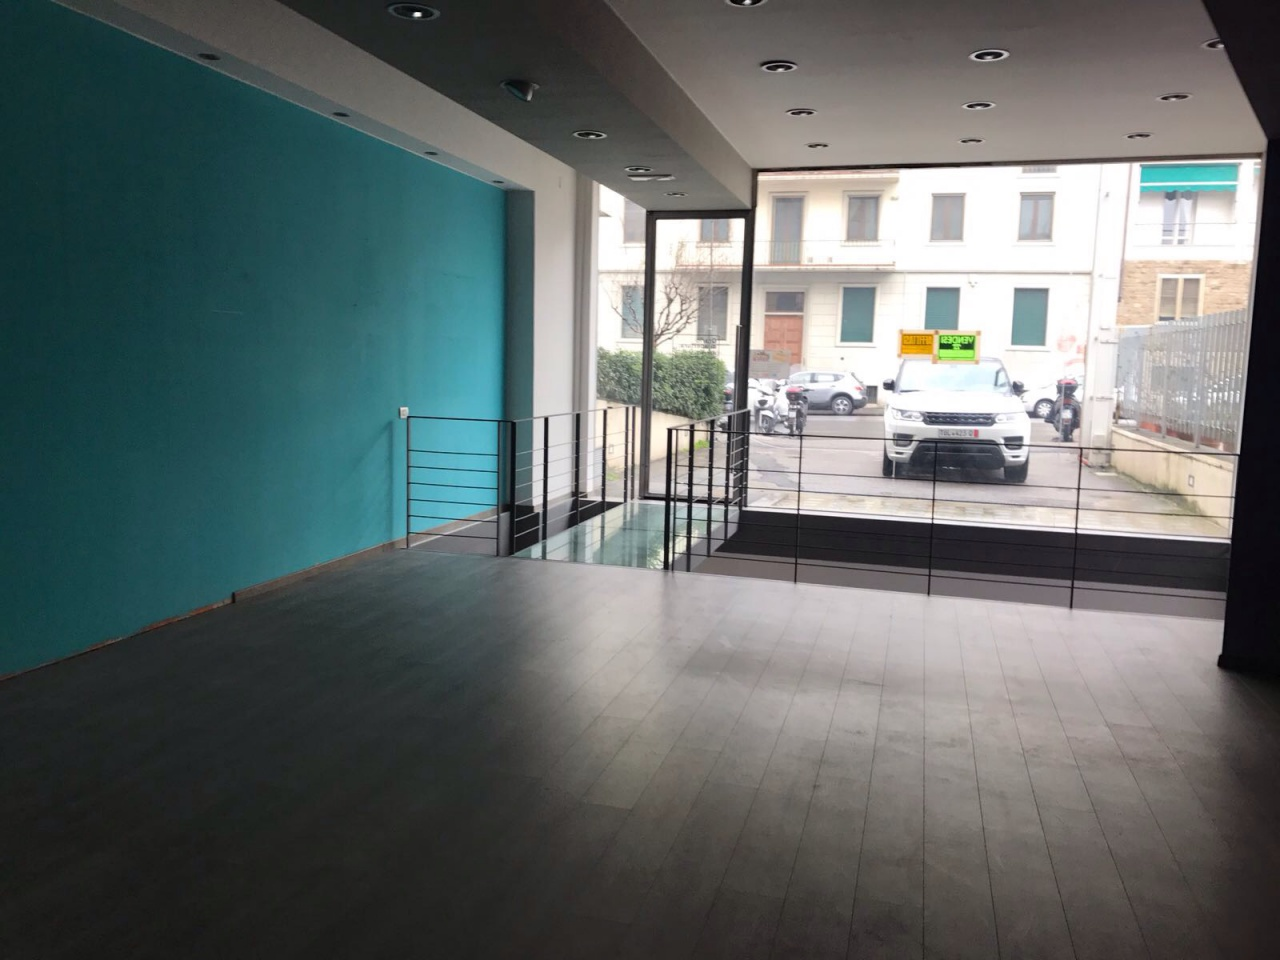 Locale Commerciale in Affitto FIRENZE